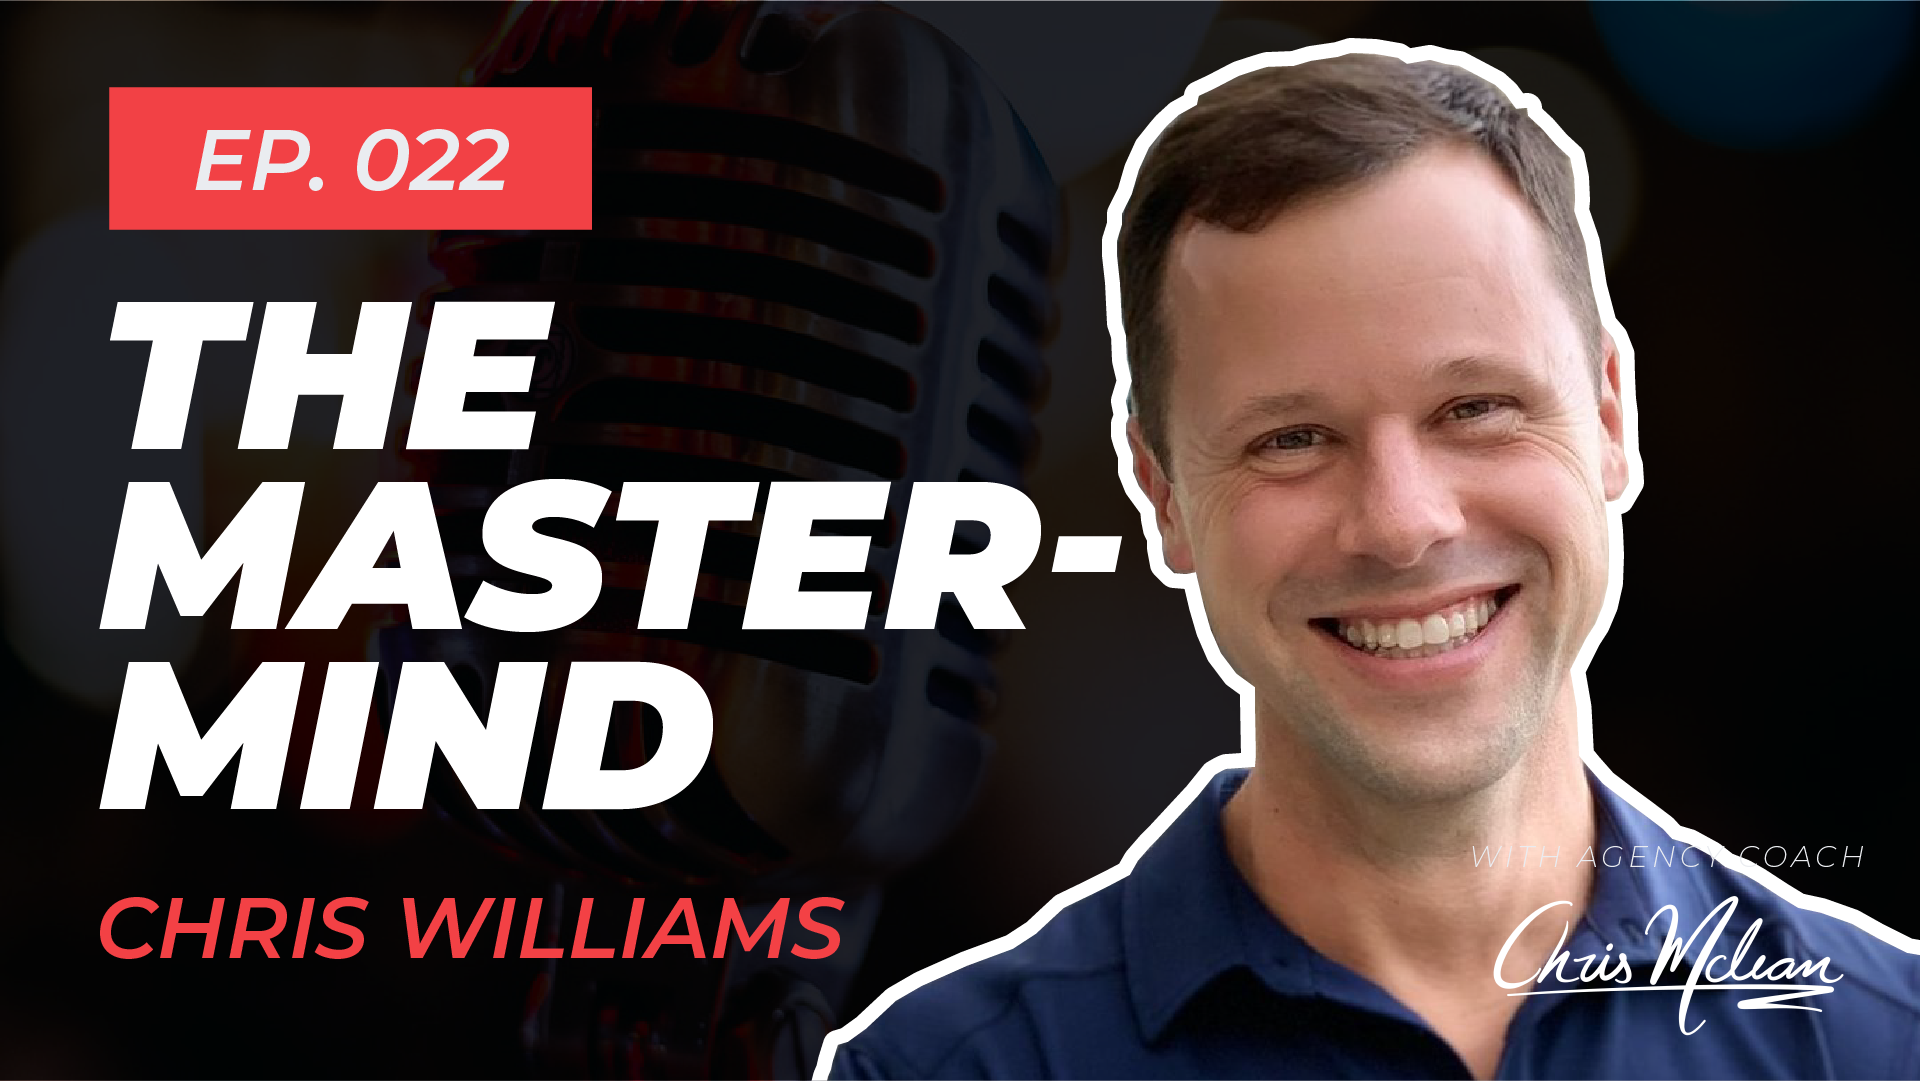 EP022 | The Mastermind with Chris Williams